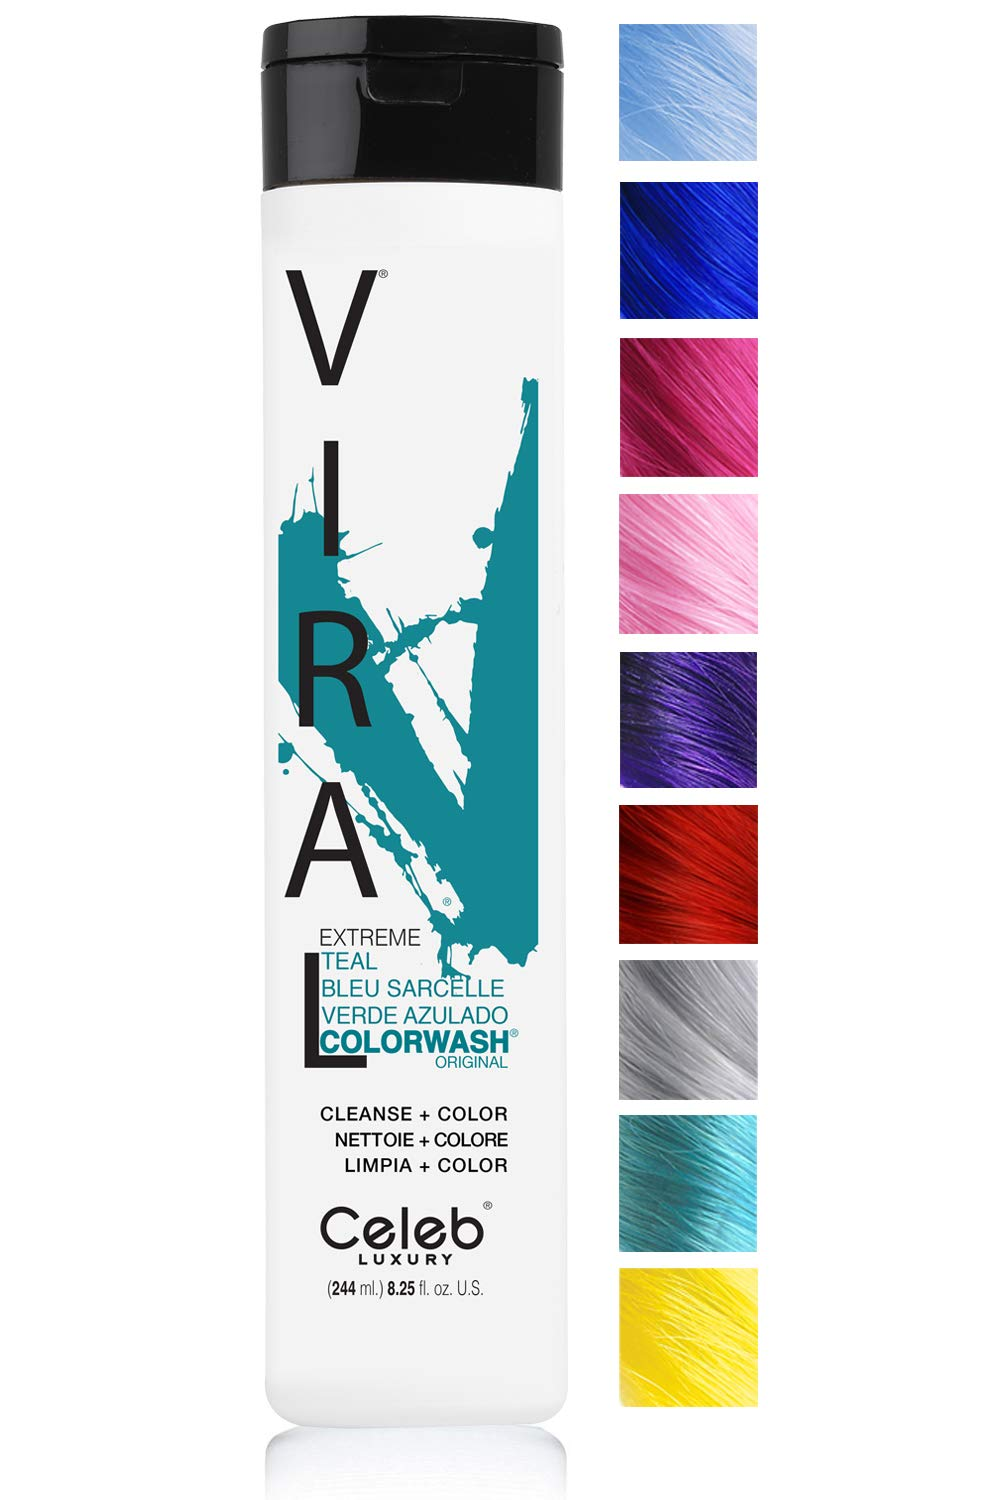 Celeb Luxury Viral Colorwash: Teal Color Depositing Shampoo Concentrate, 10 Vivid and Pastel Colors, Stops Fade, 1 Quick Wash, Cleanse + Color, Sulfate-Free, Cruelty-Free, 100% Vegan by CELEB LUXURY